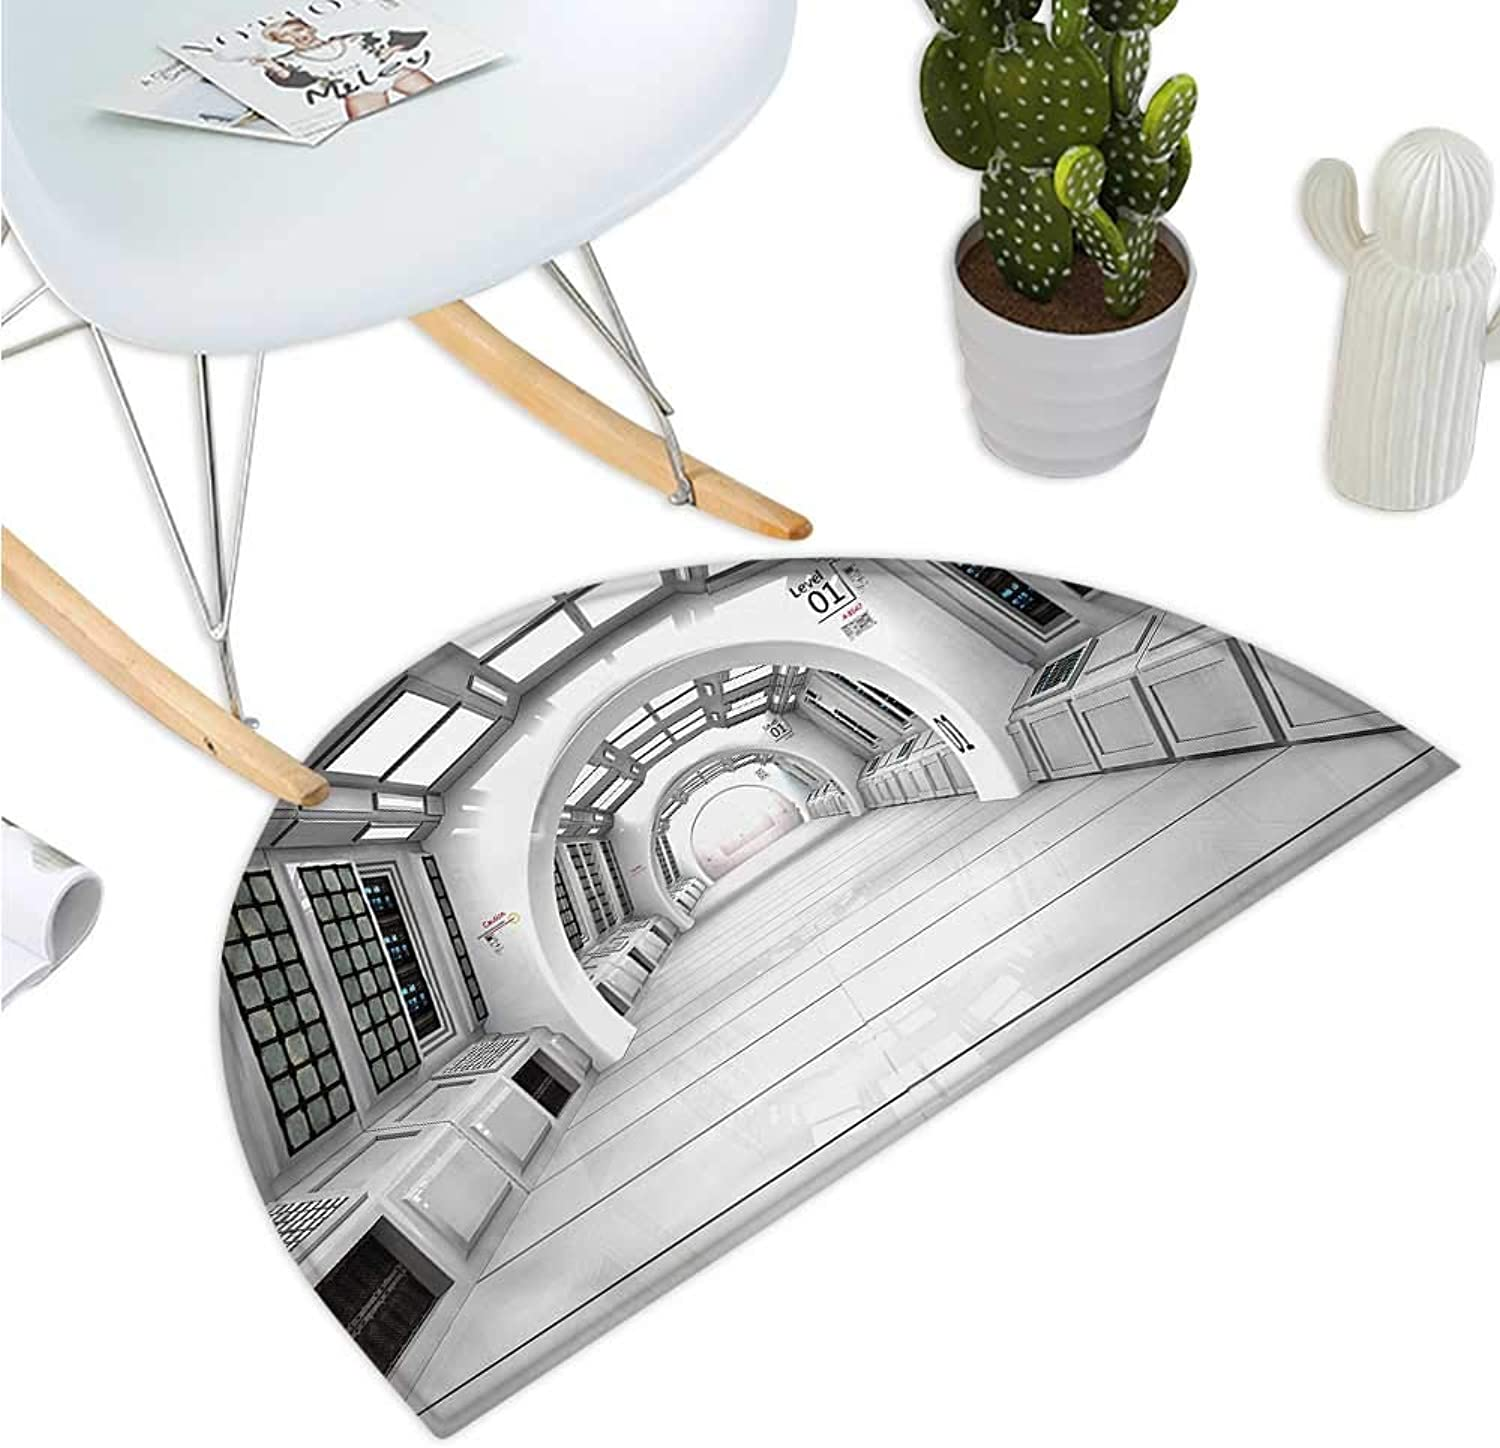 Outer Space Semicircular Cushion Spacelaunch View with Hypertech Energy Stellar Extra Solar Nuclear Trip Image Print Entry Door Mat H 43.3  xD 64.9  White